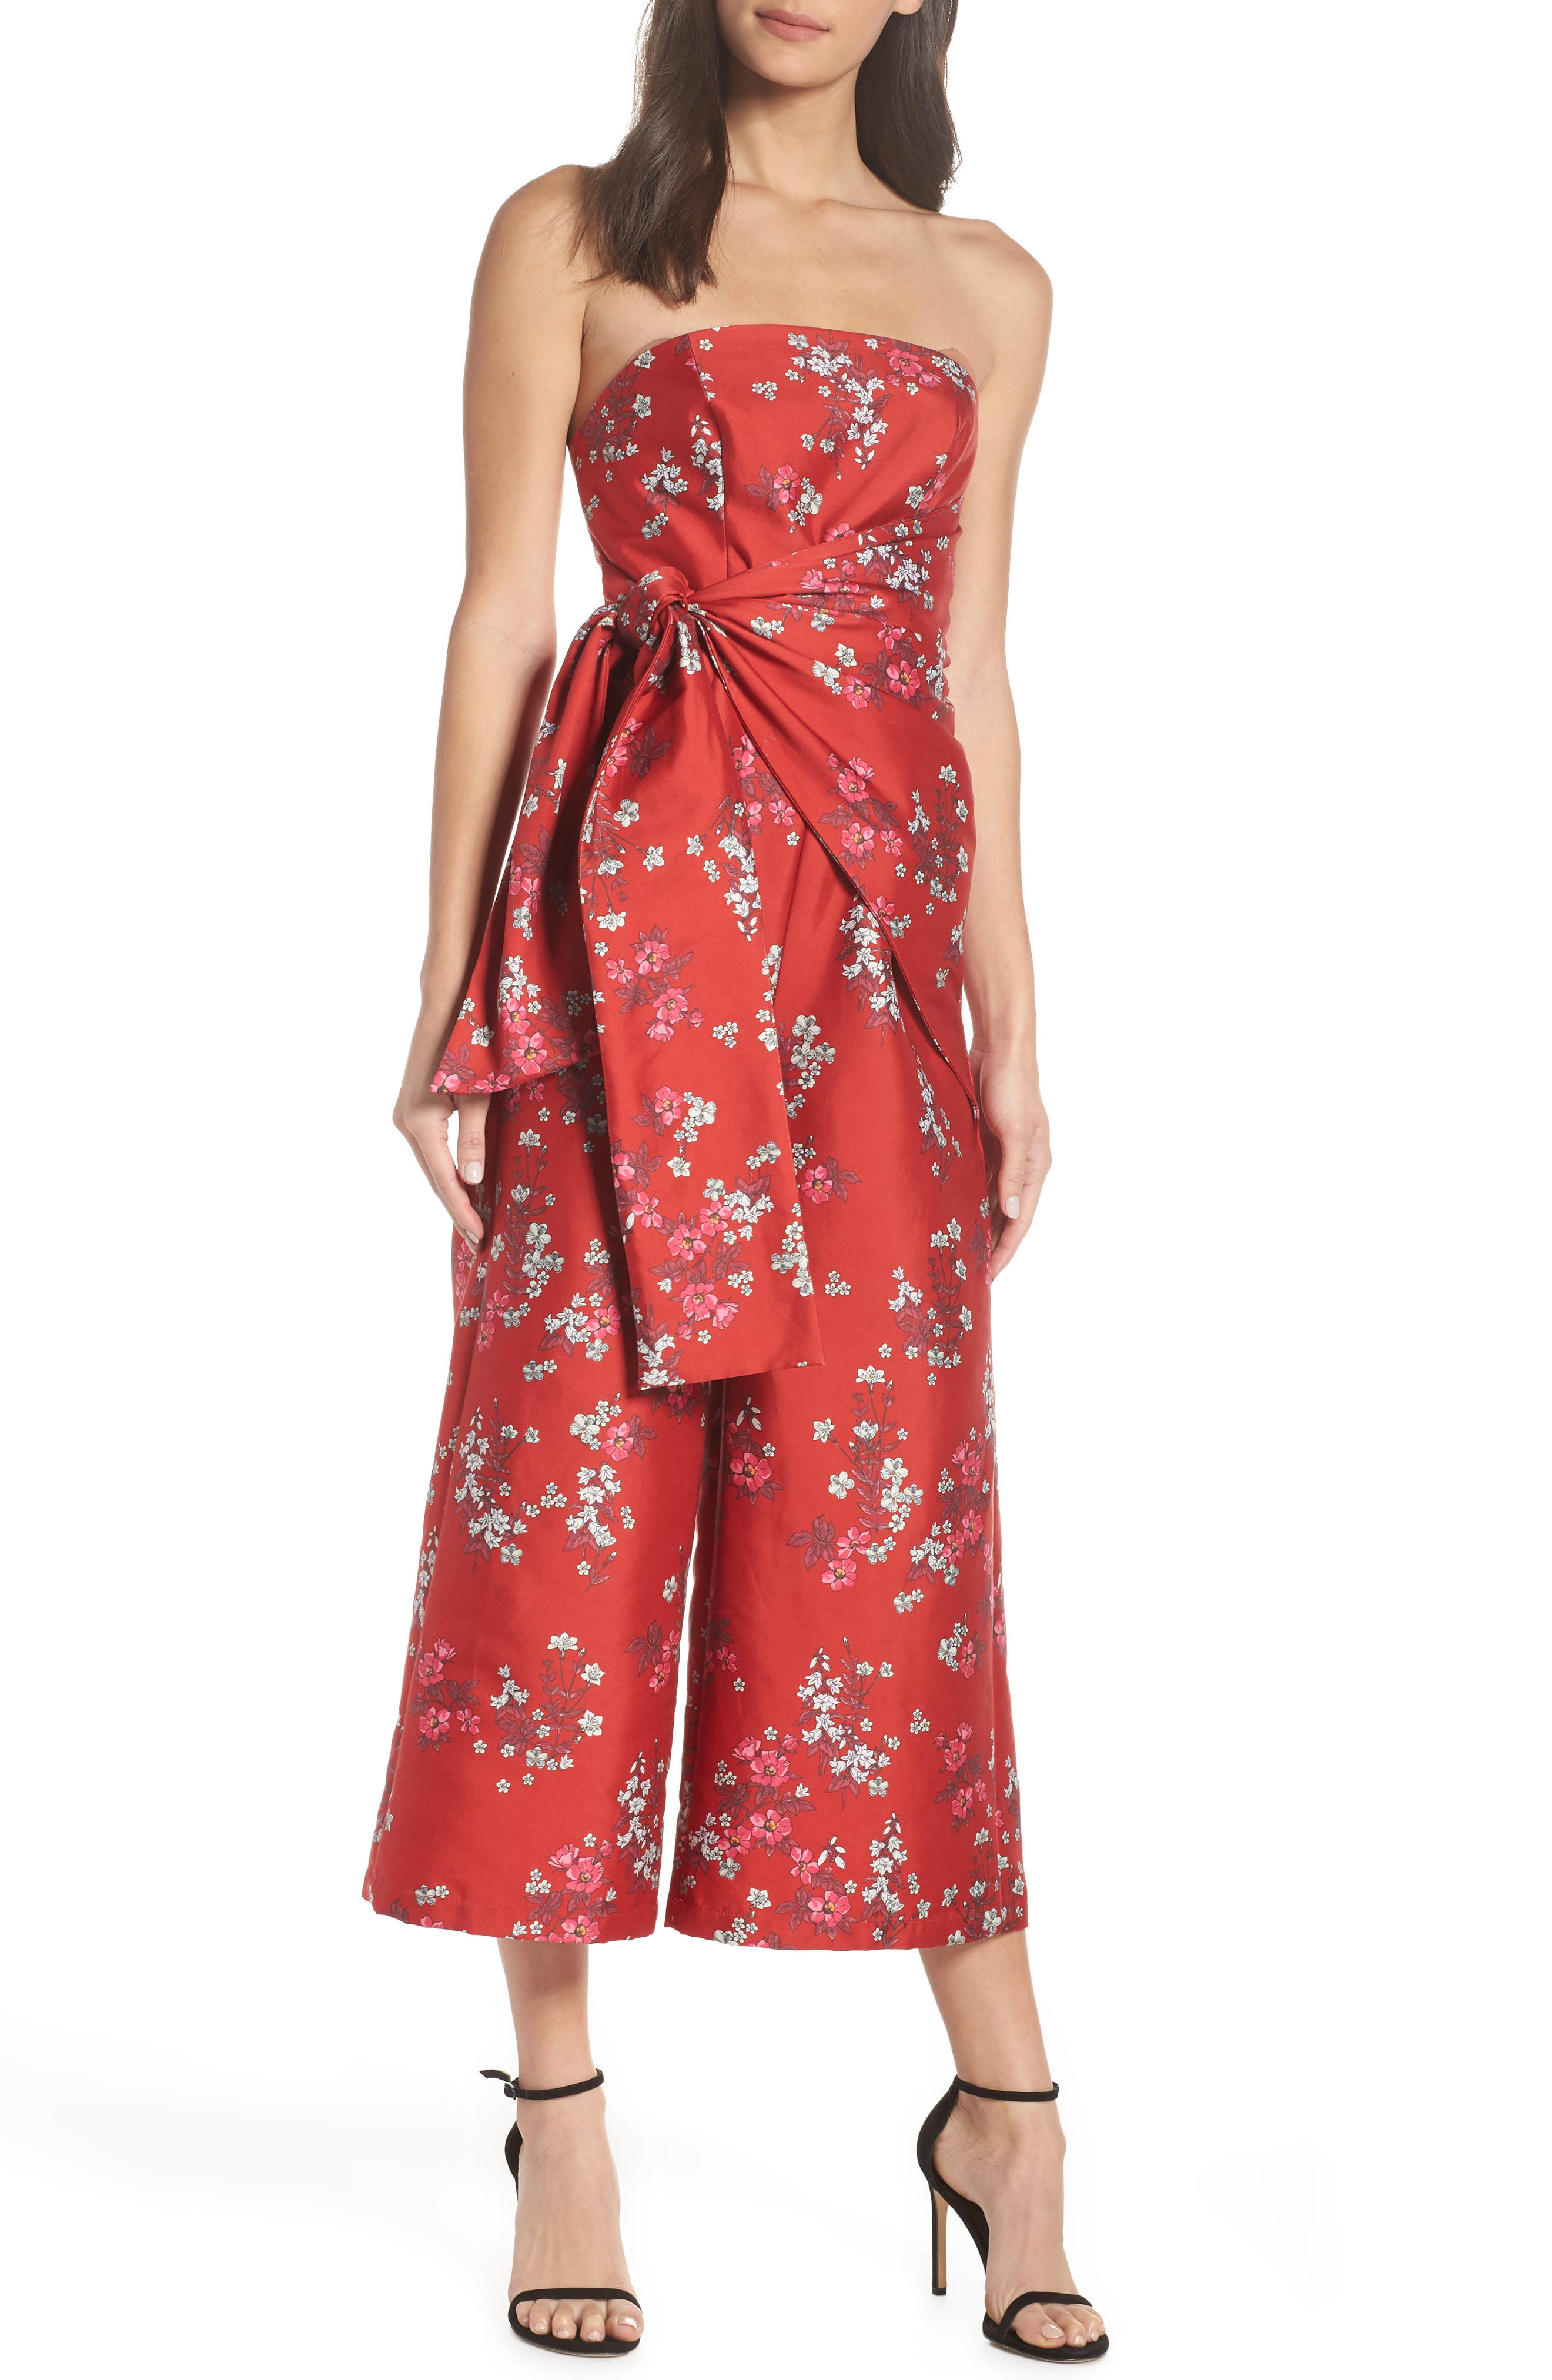 Nordstrom Wear For Women To Occasion Looks Every Where 0q0wtYr